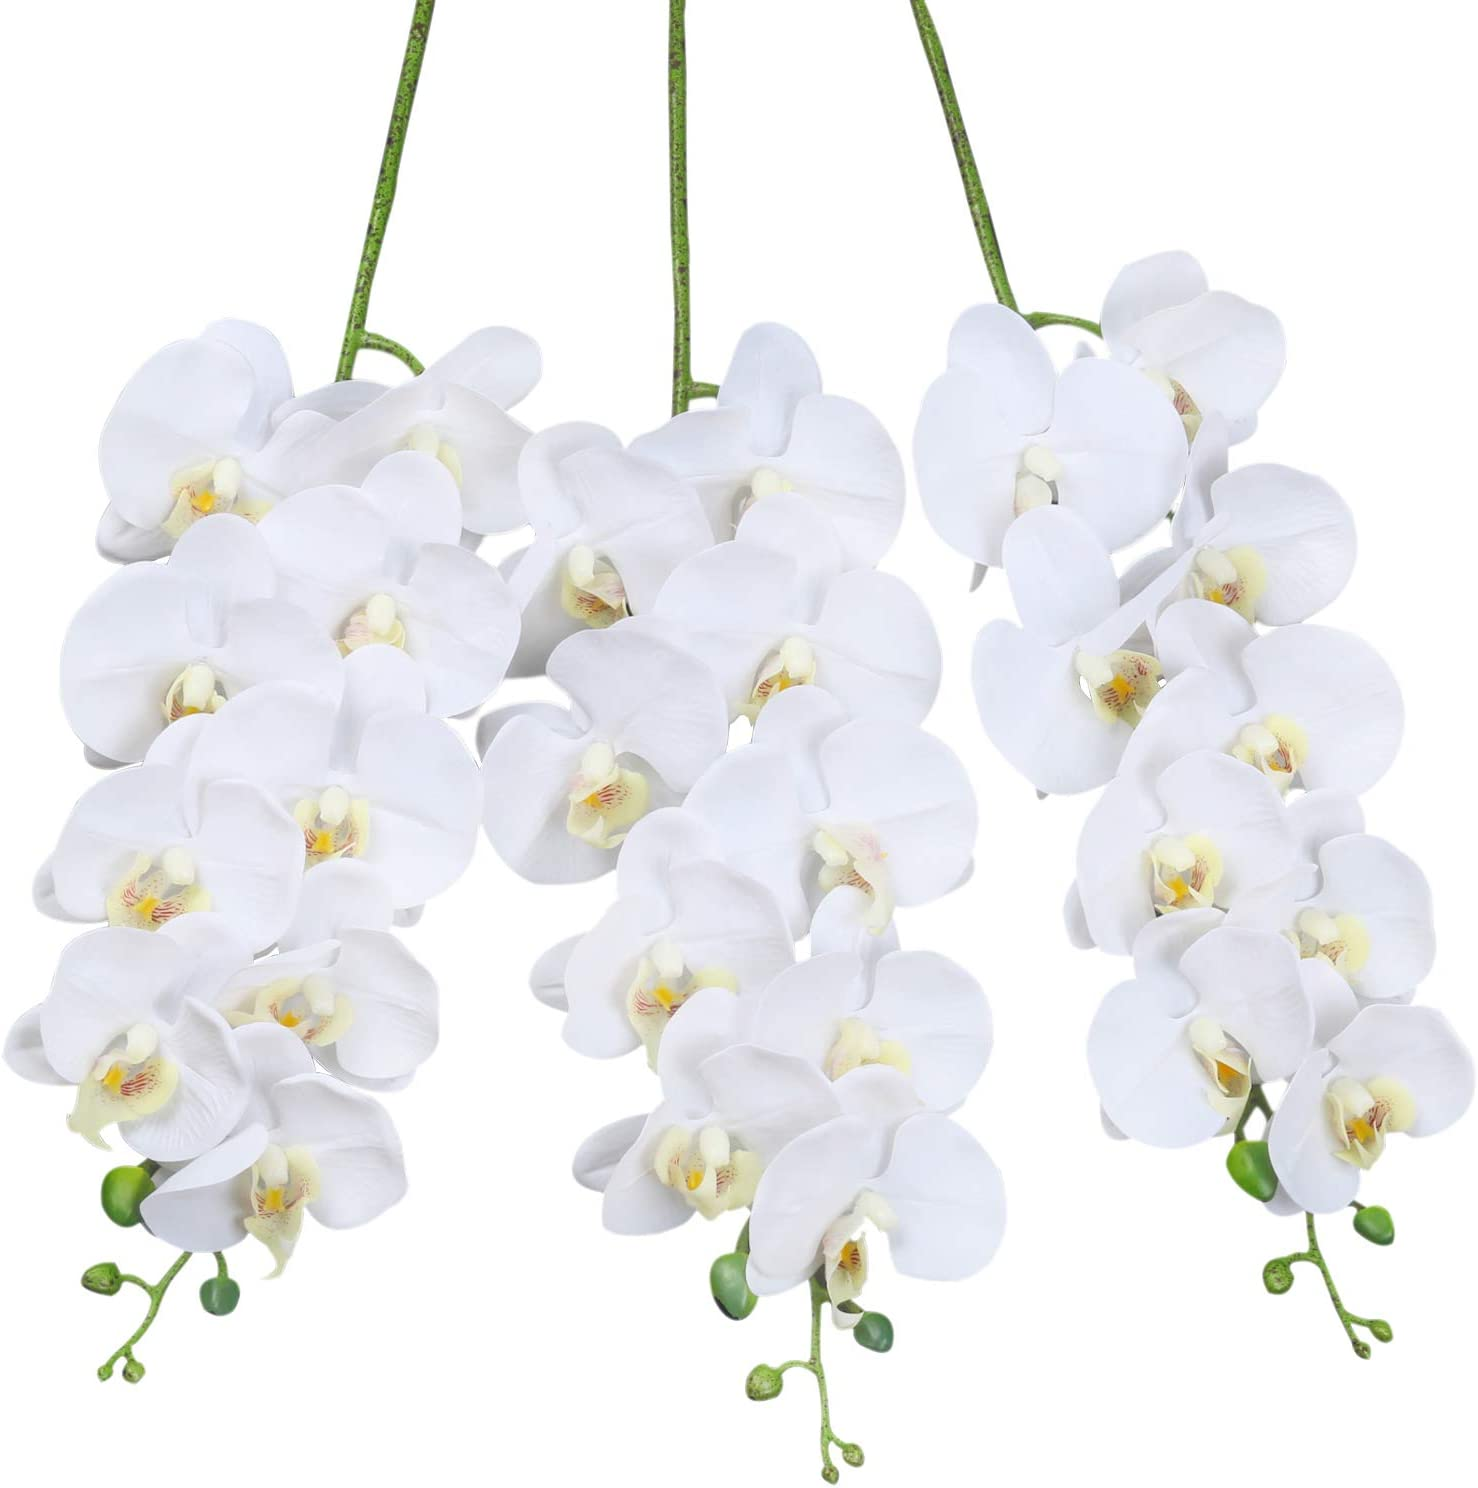 SHACOS Artificial Orchid Stems Set of 3 PU Real Touch White Orchid 37 inch Tall 9 Big Blooms Fake Phalaenopsis Flower Home Wedding Decoration (3 PCS, White)